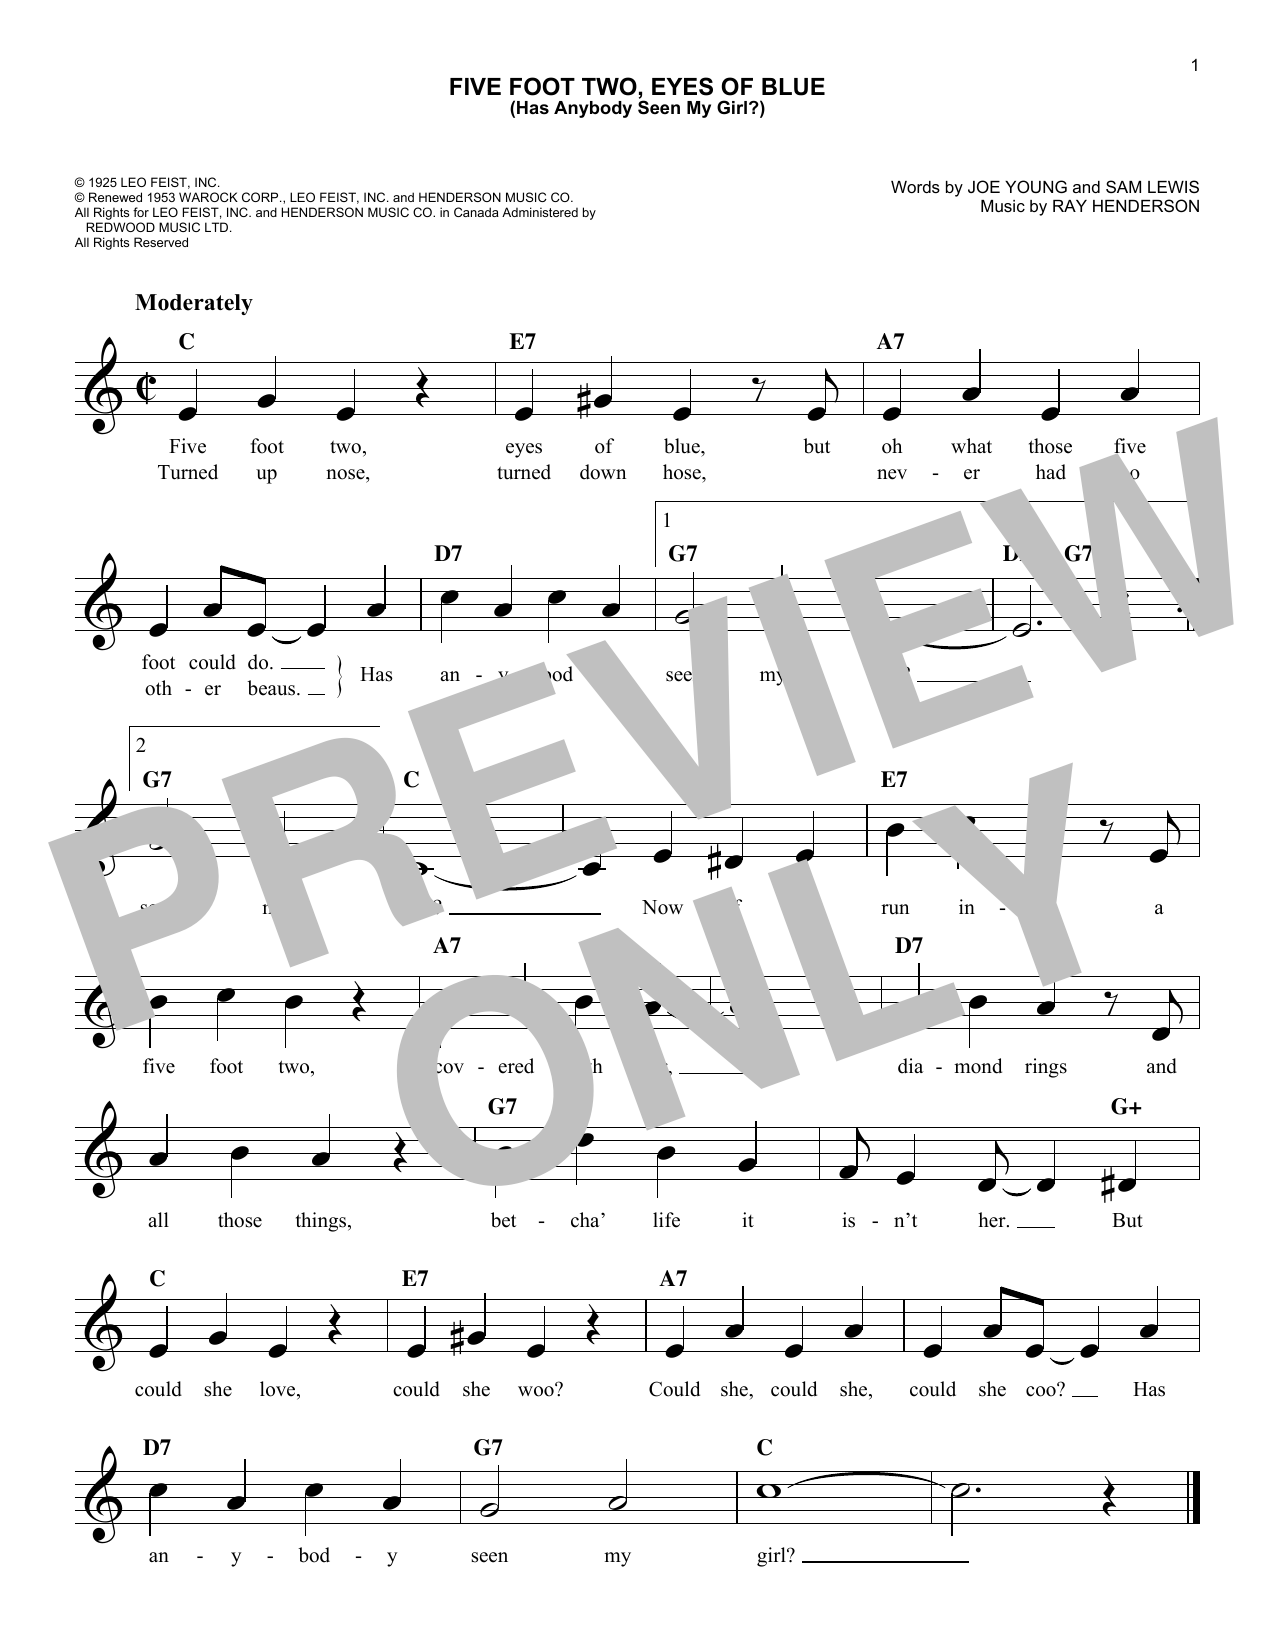 Sam Lewis Five Foot Two, Eyes Of Blue (Has Anybody Seen My Girl?) sheet music notes and chords. Download Printable PDF.